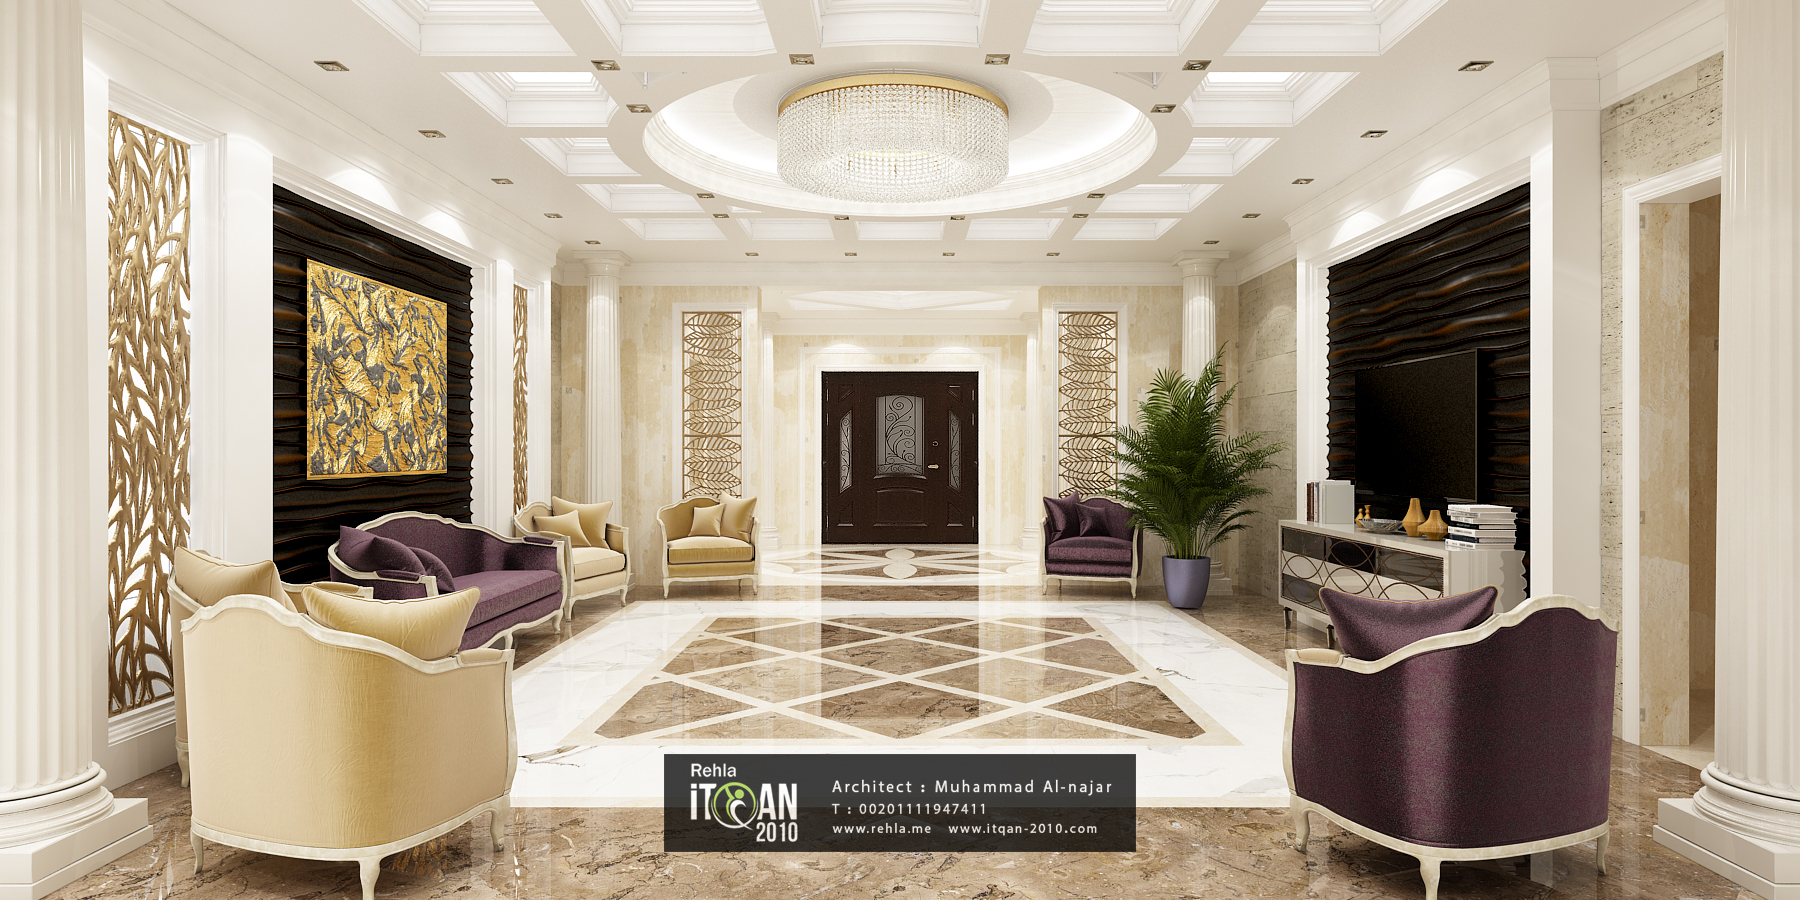 Classic Reception Marble Work 3d Wall Panels And Cnc Wood